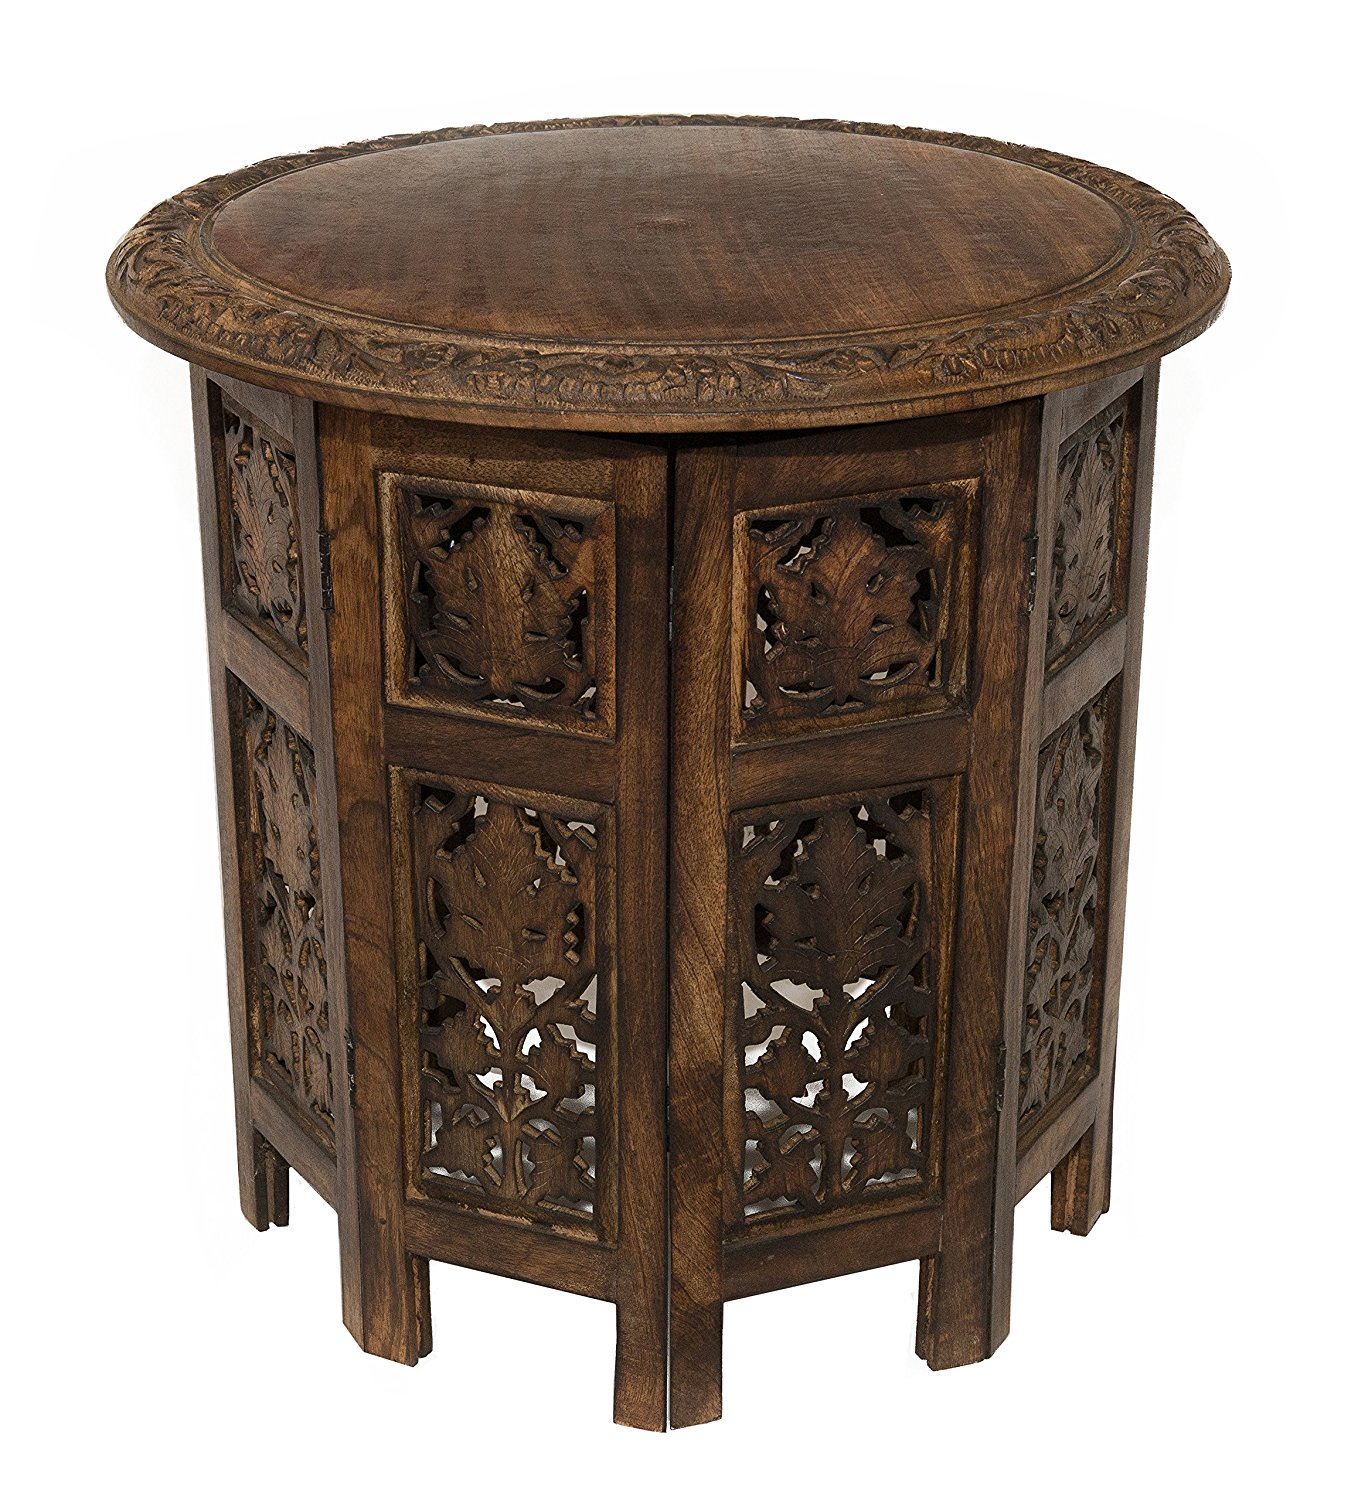 lovely small accent table for ornate long narrow tables wooden round tread plates door thresholds large outdoor cover triangle shaped corner canadian tire lounge chairs west elm